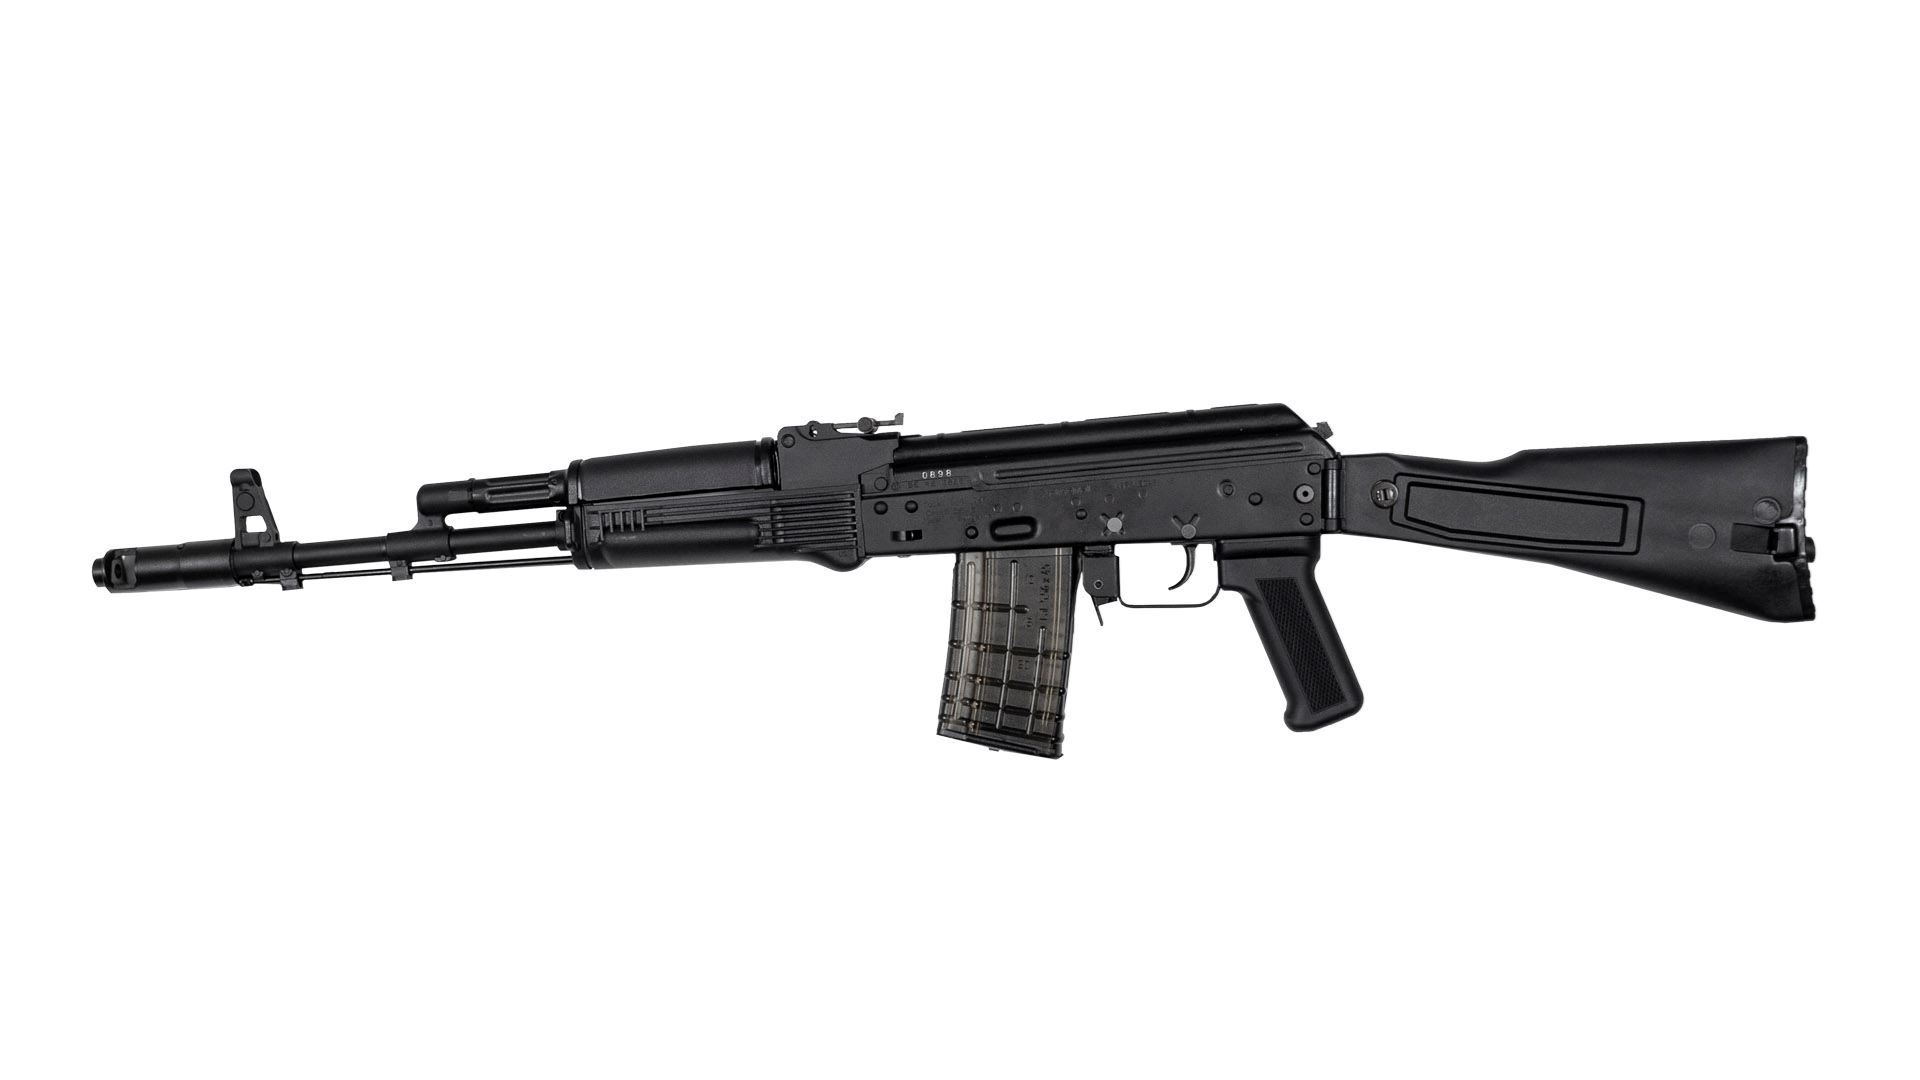 Arsenal SLR-106F 5.56 NATO Caliber Rifle